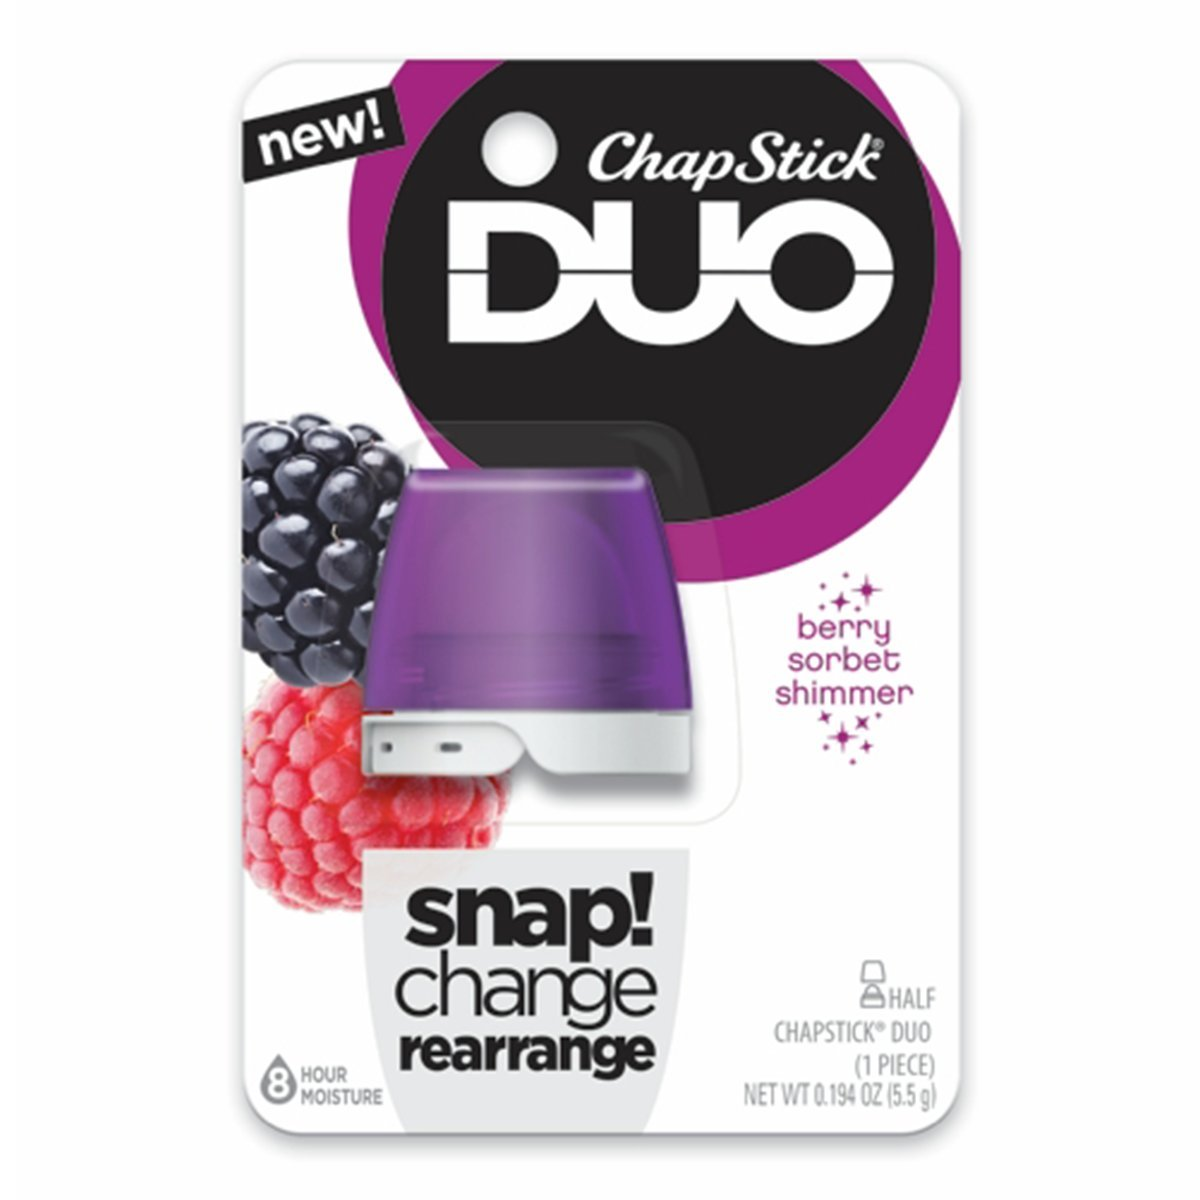 ChapStick DUO (Berry Sorbet Shimmer Flavor, 1 Blister Pack of 1 Piece) Half Lip Balm, 8 Hour Moisture, 0.194 Ounce